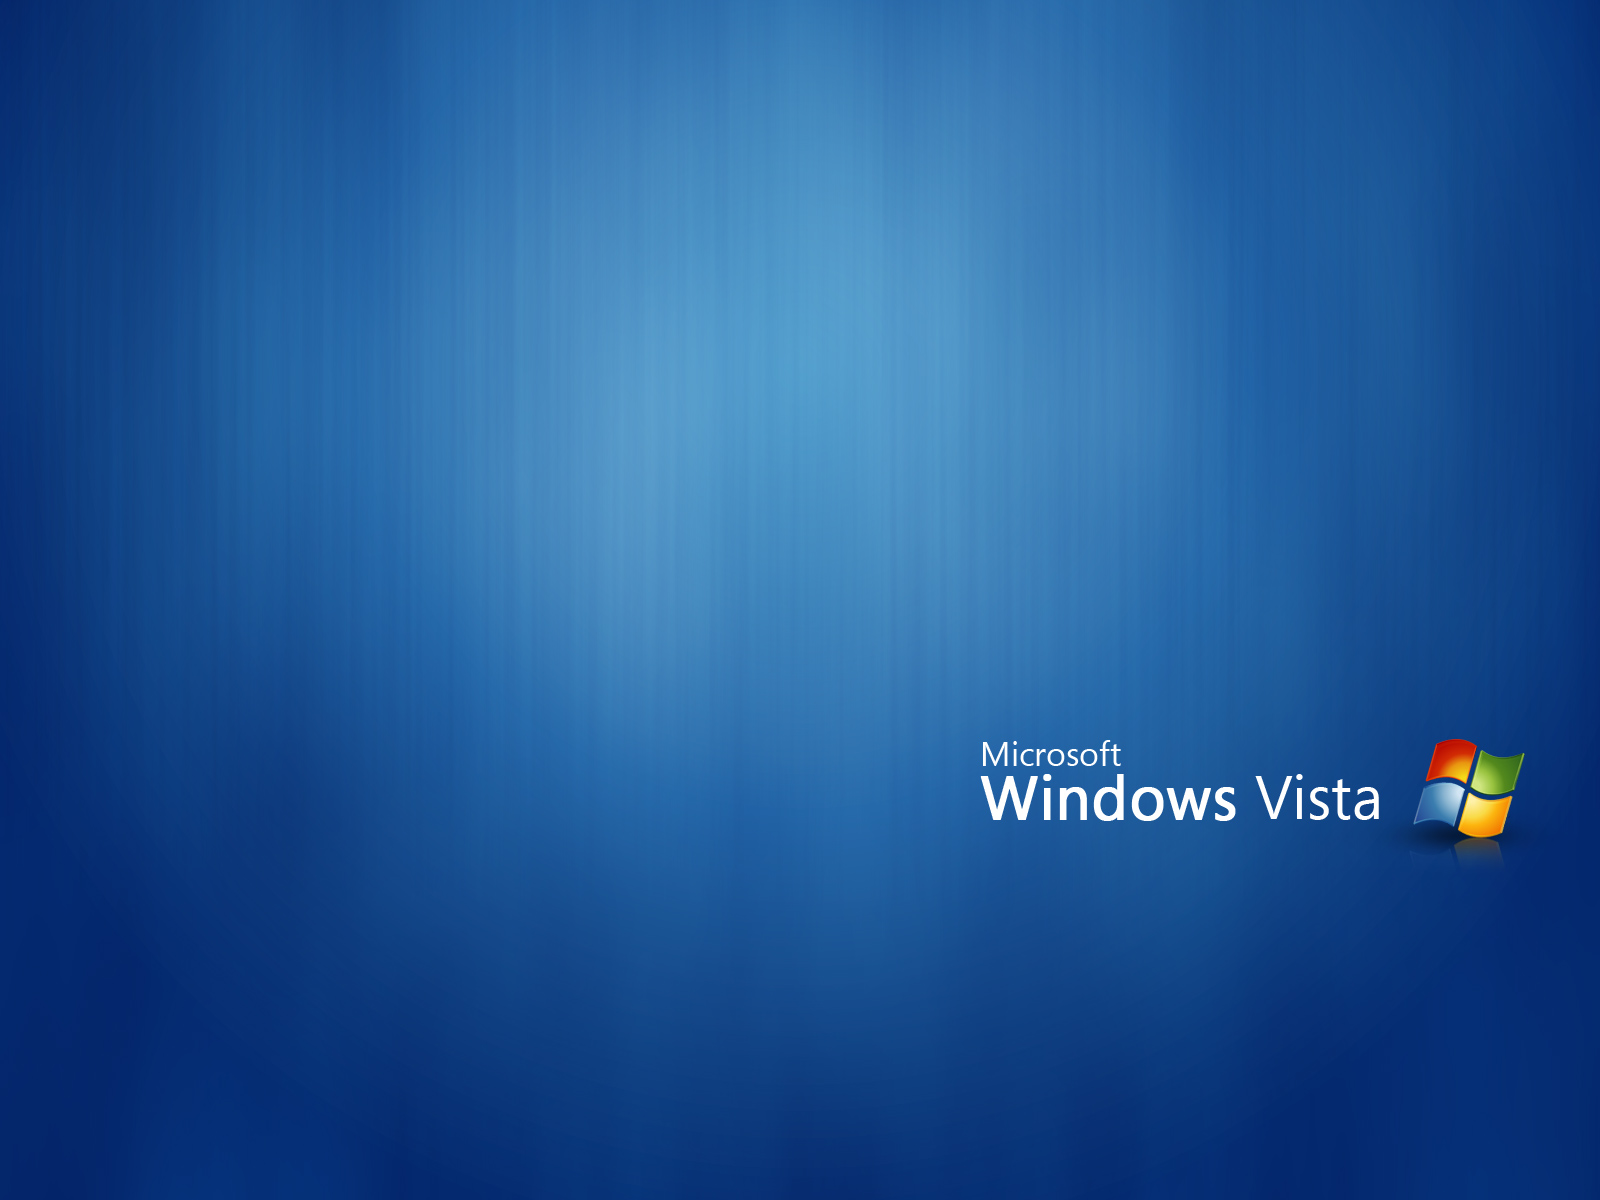 Vista Wallpapers Vista Home Windows Vista Wallpapers 1600x1200